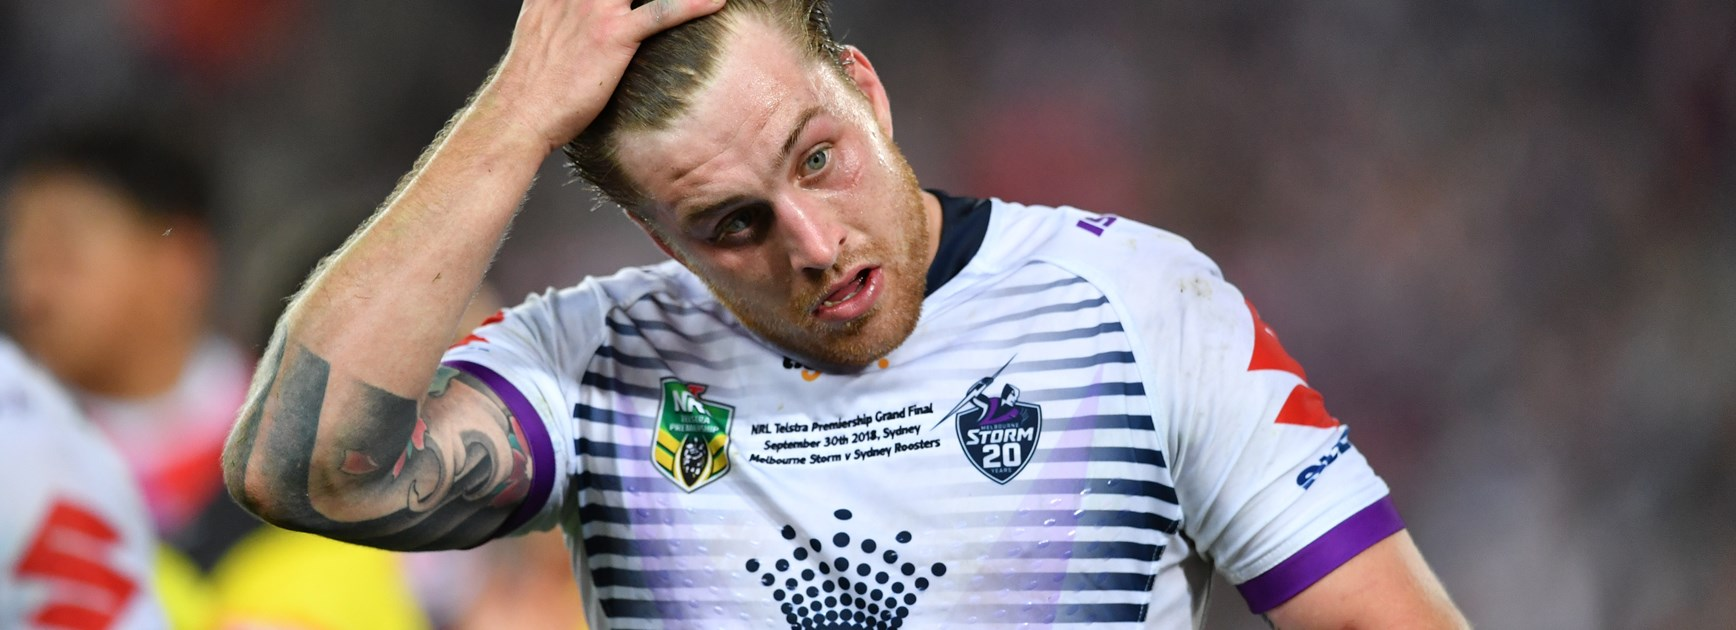 af63b818611 I don t want to be that player   Melbourne Storm s Cameron Munster ...